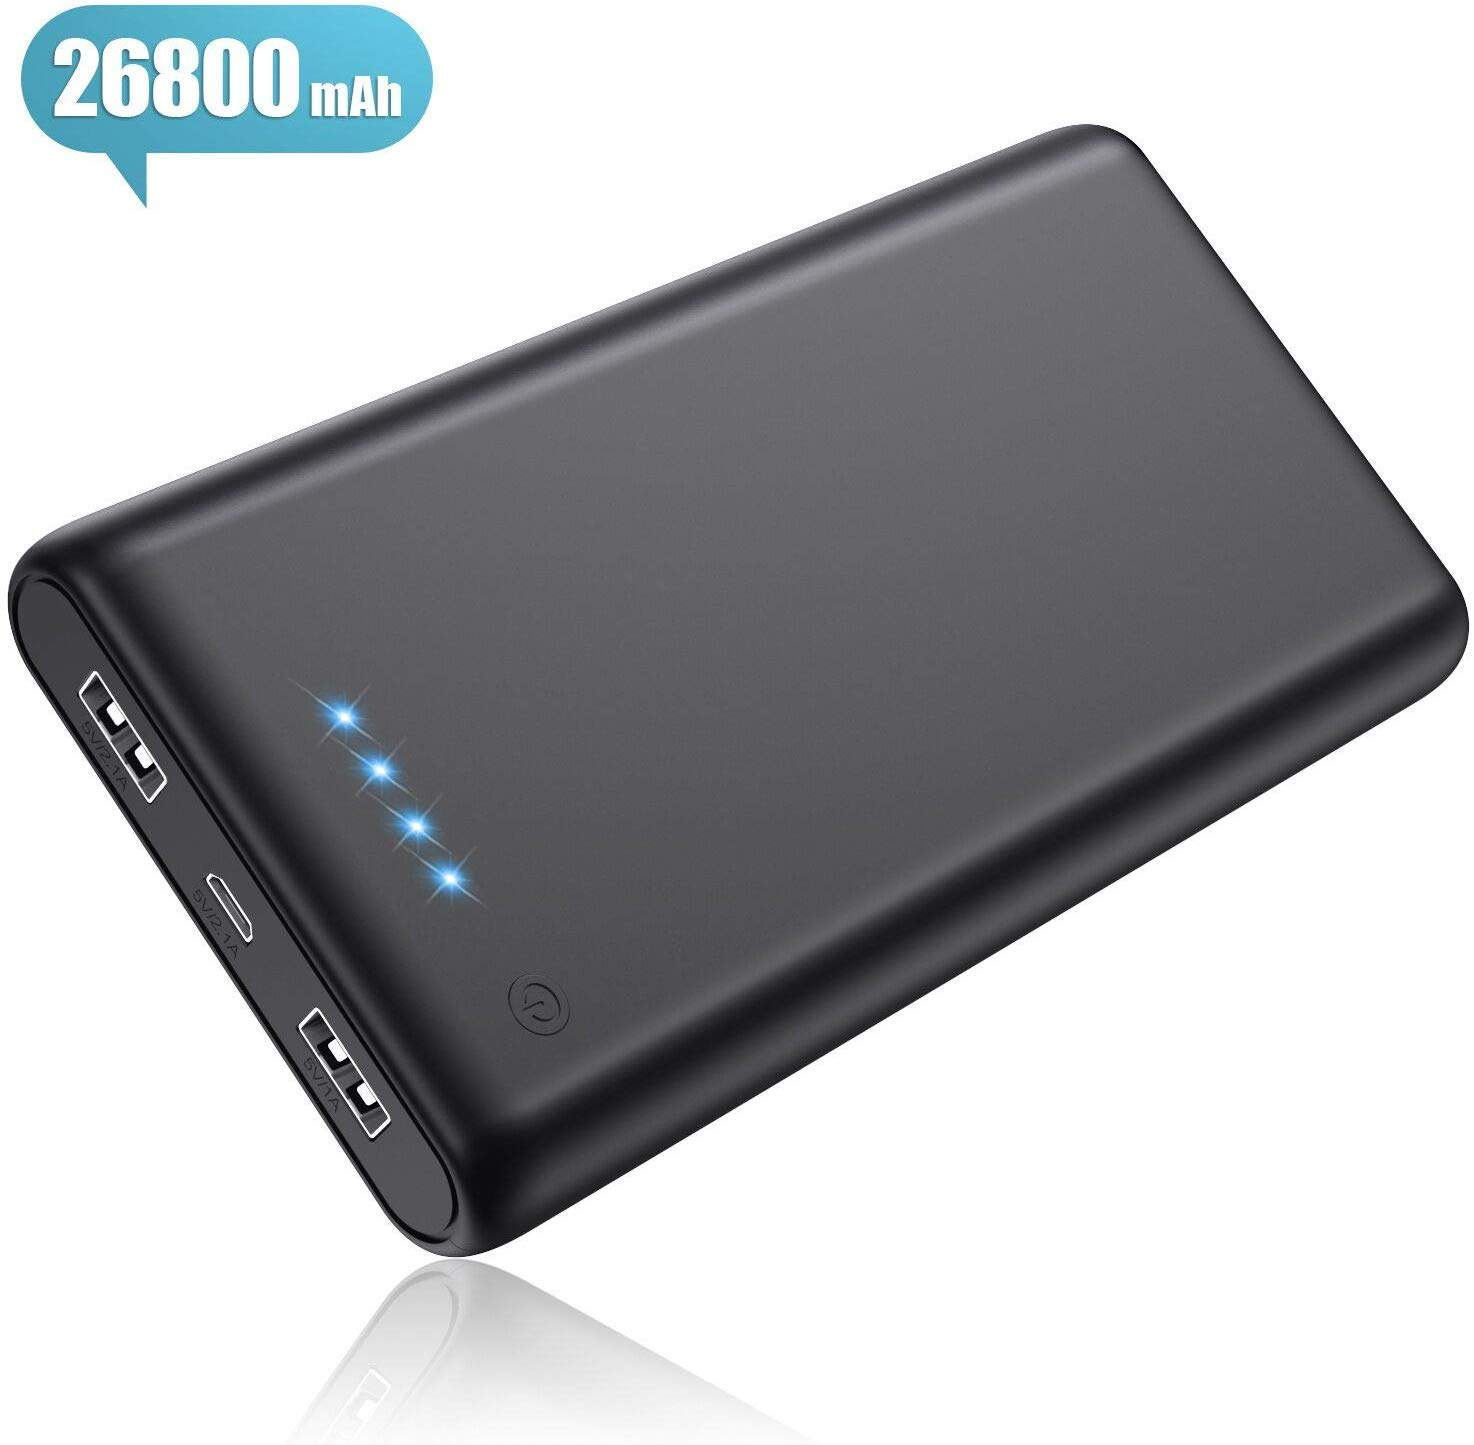 Pxwaxpy Power Bank, Portable Charger [26800mAh Newest Version] High Capacity External Battery Pack